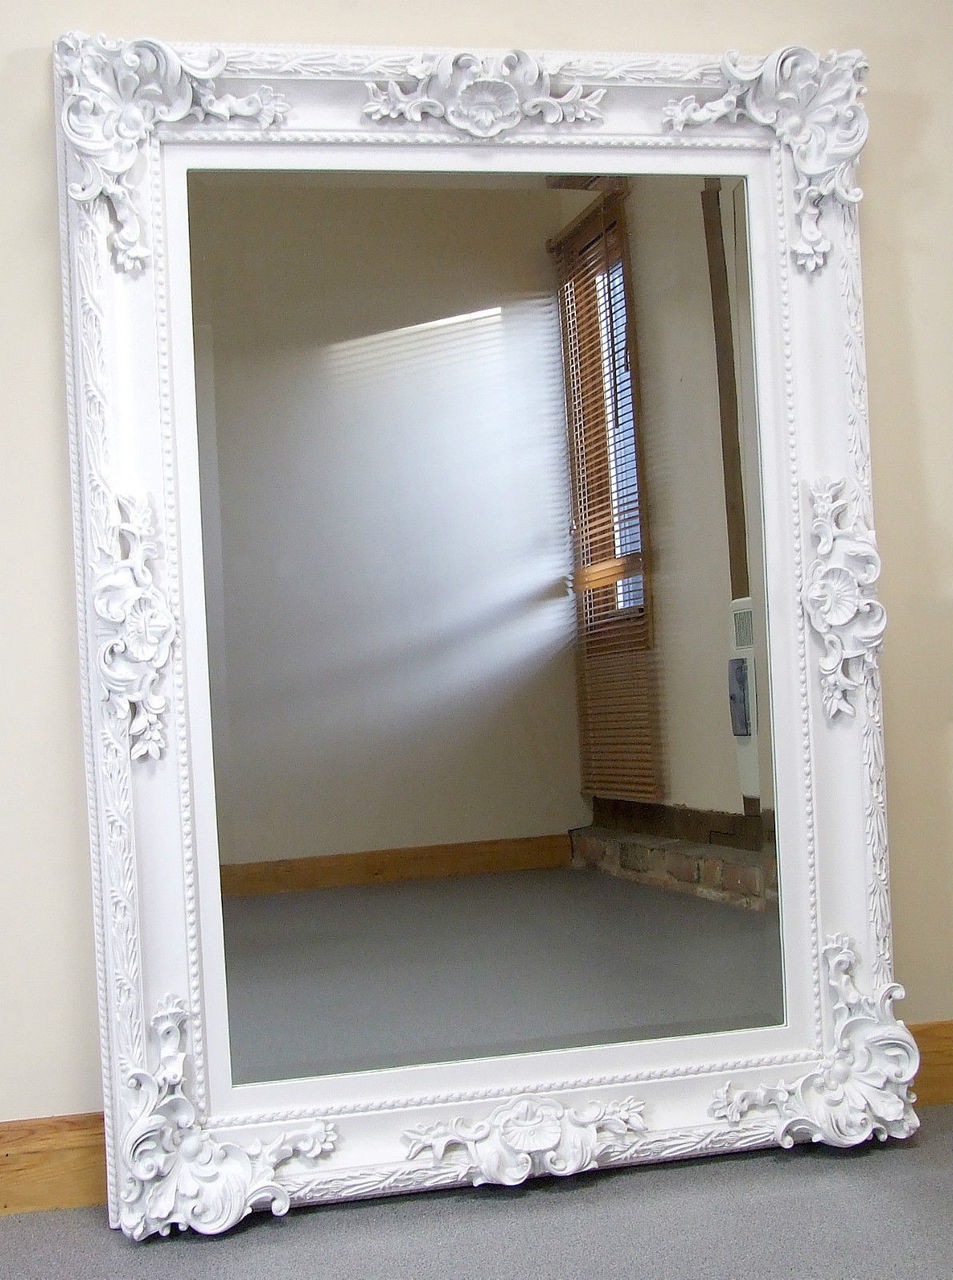 Paris French Antique Style Ornate Rectangle Wall Mirror White 33 X 45 Mirrors 2 Home